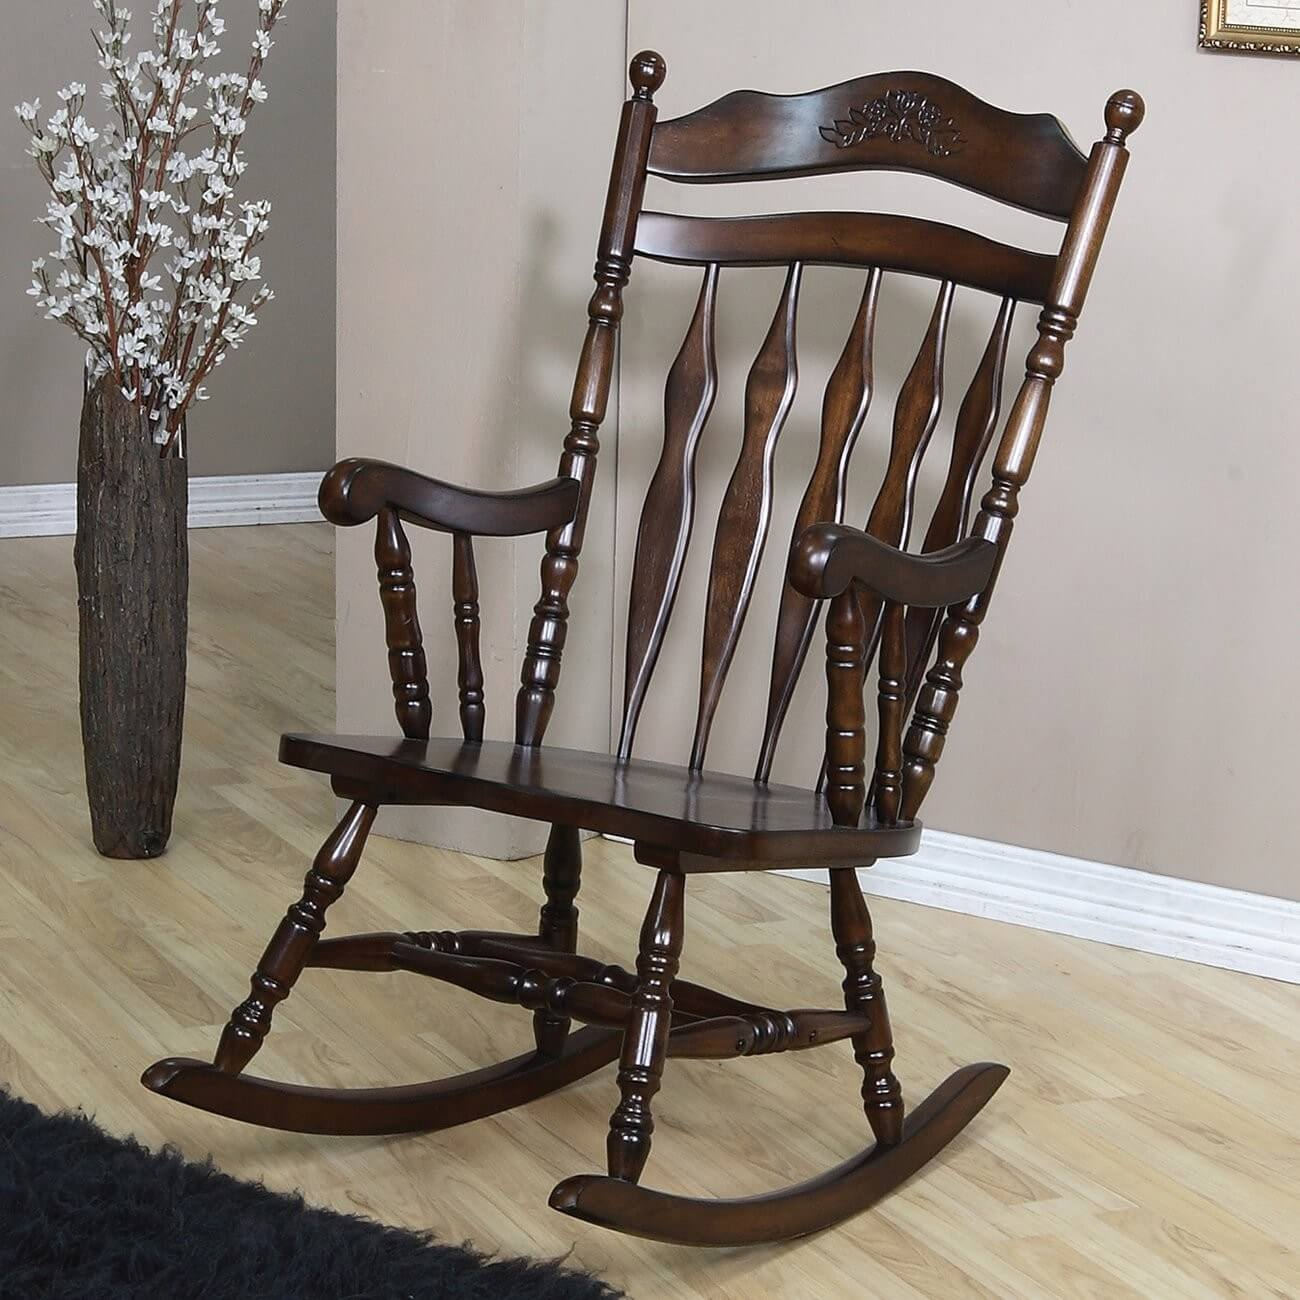 Traditional rocking chairs feature a solid wooden frame with arms and carved detail. Our example boasts a filigreed carving in the main back piece.